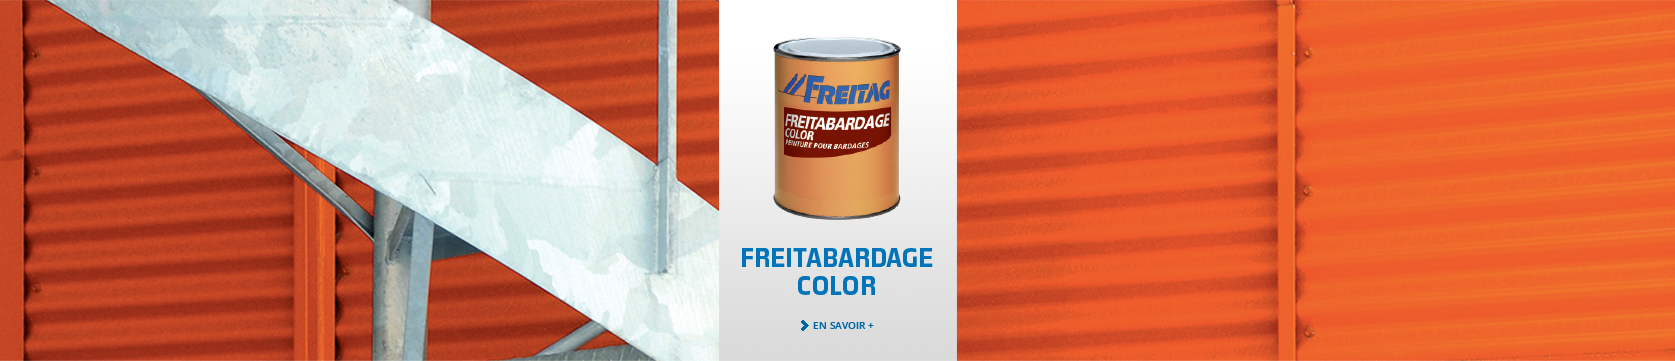 Freitabardage Color